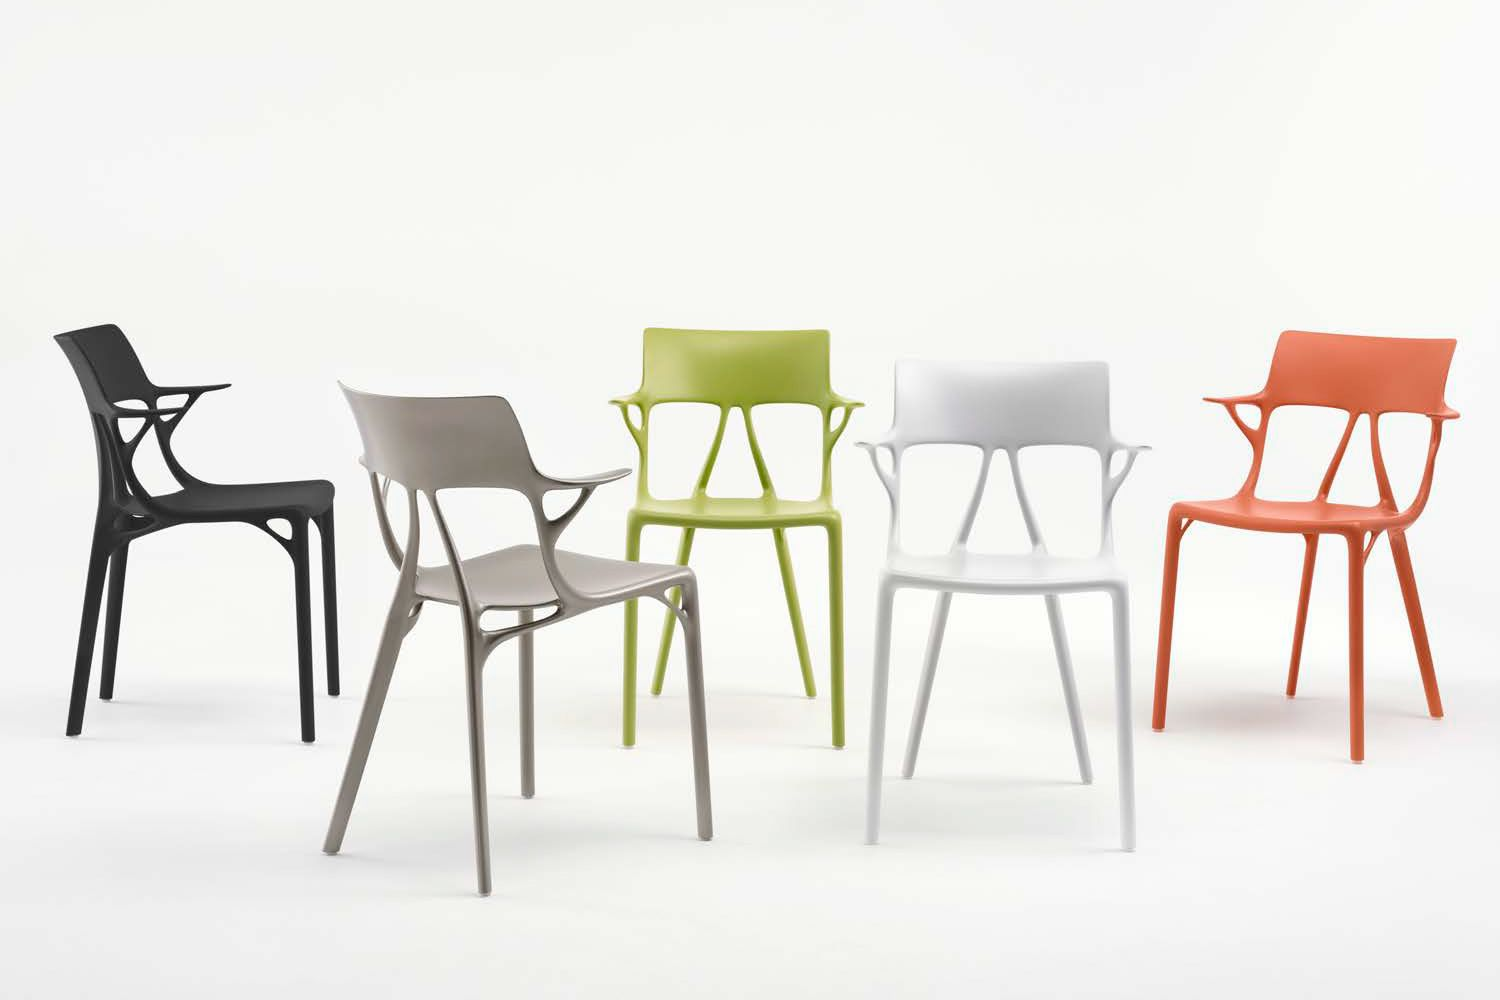 Kartell design chairs, polypropylene in different colours